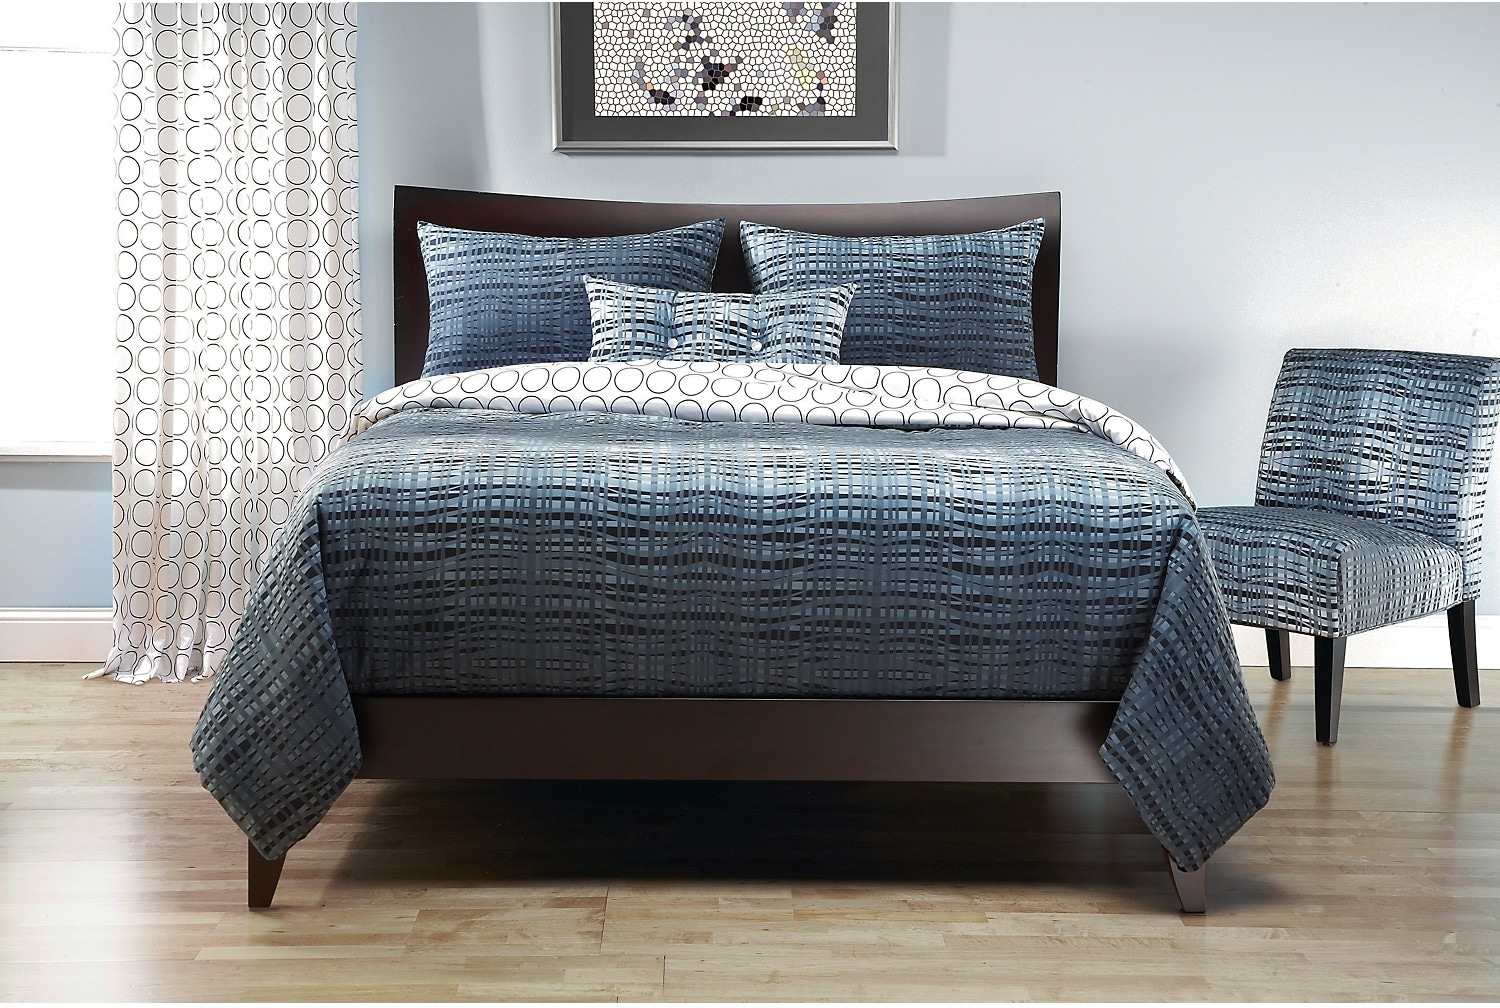 Mattresses and Bedding - Interweave Reversible 4 Piece Queen Duvet Cover Set